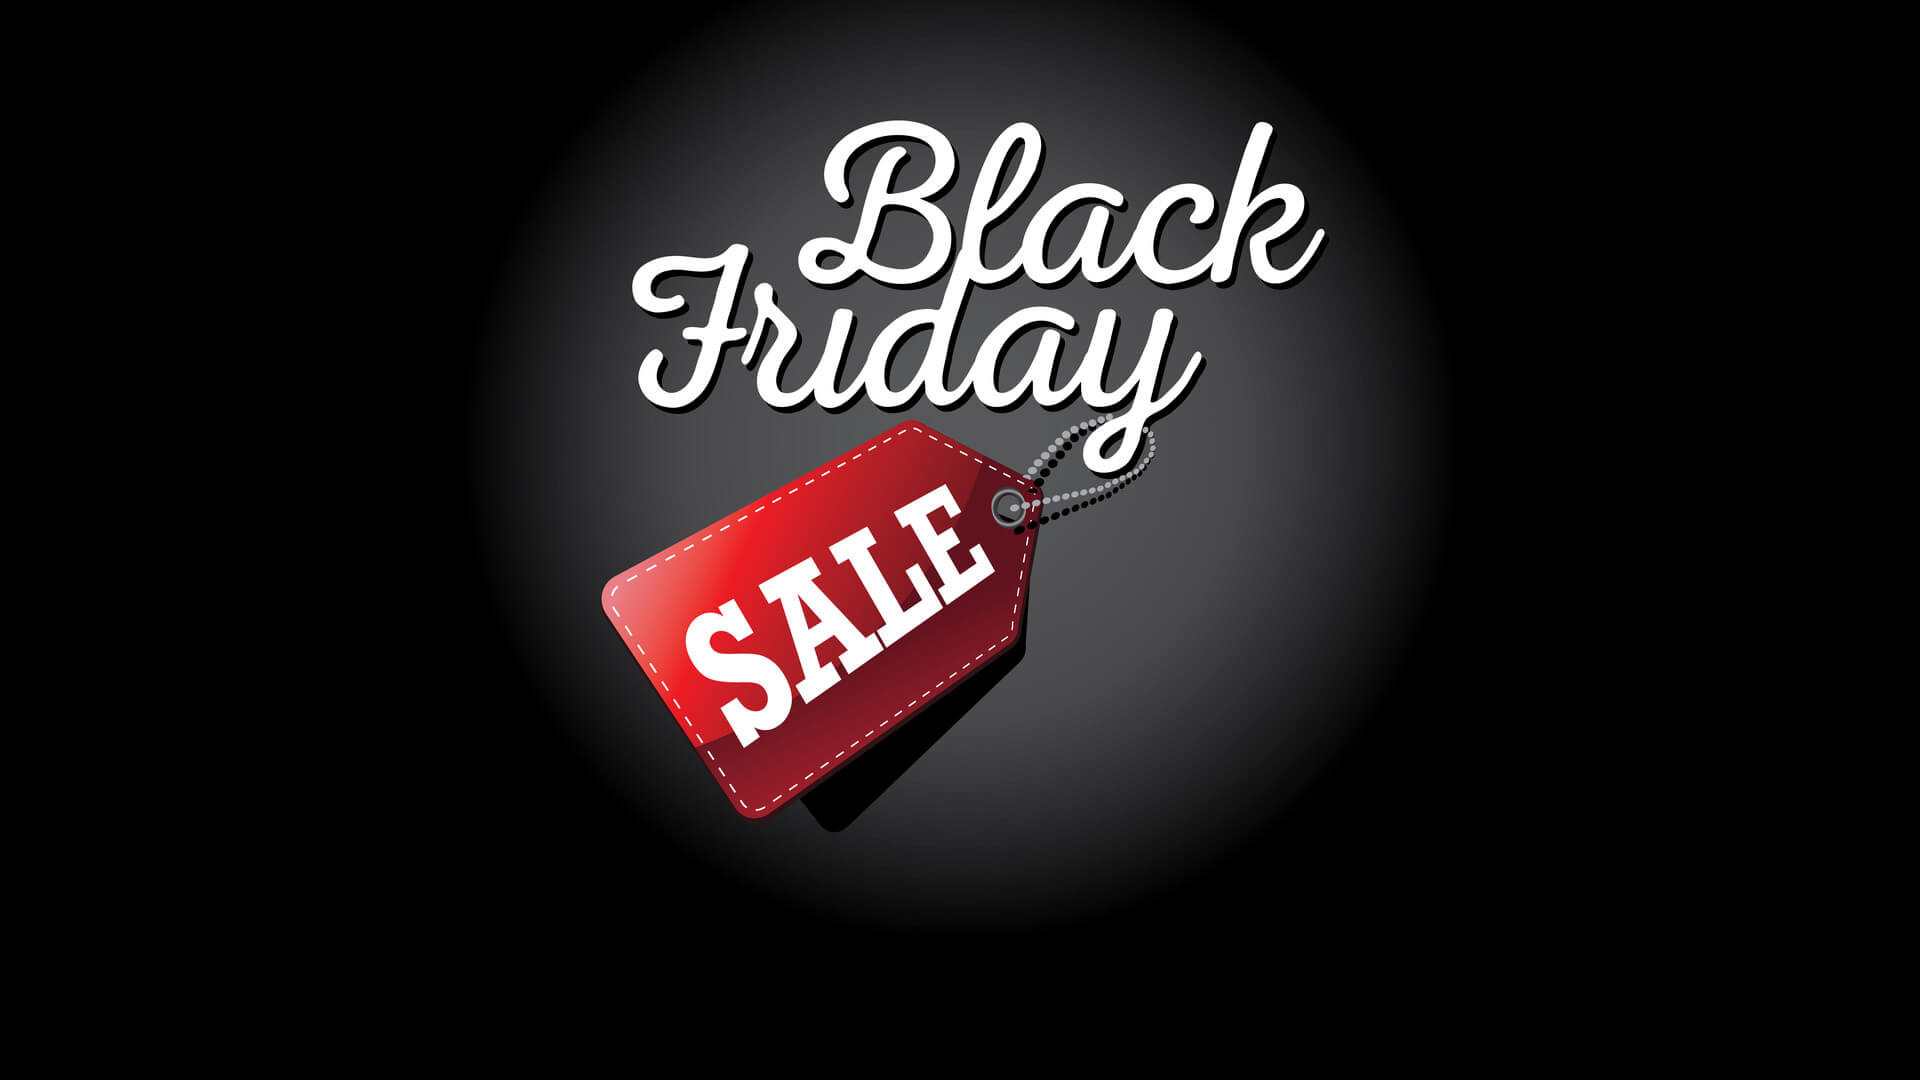 Black Fruday Google Launches Special Black Friday Cyber Monday Deals Ad Unit